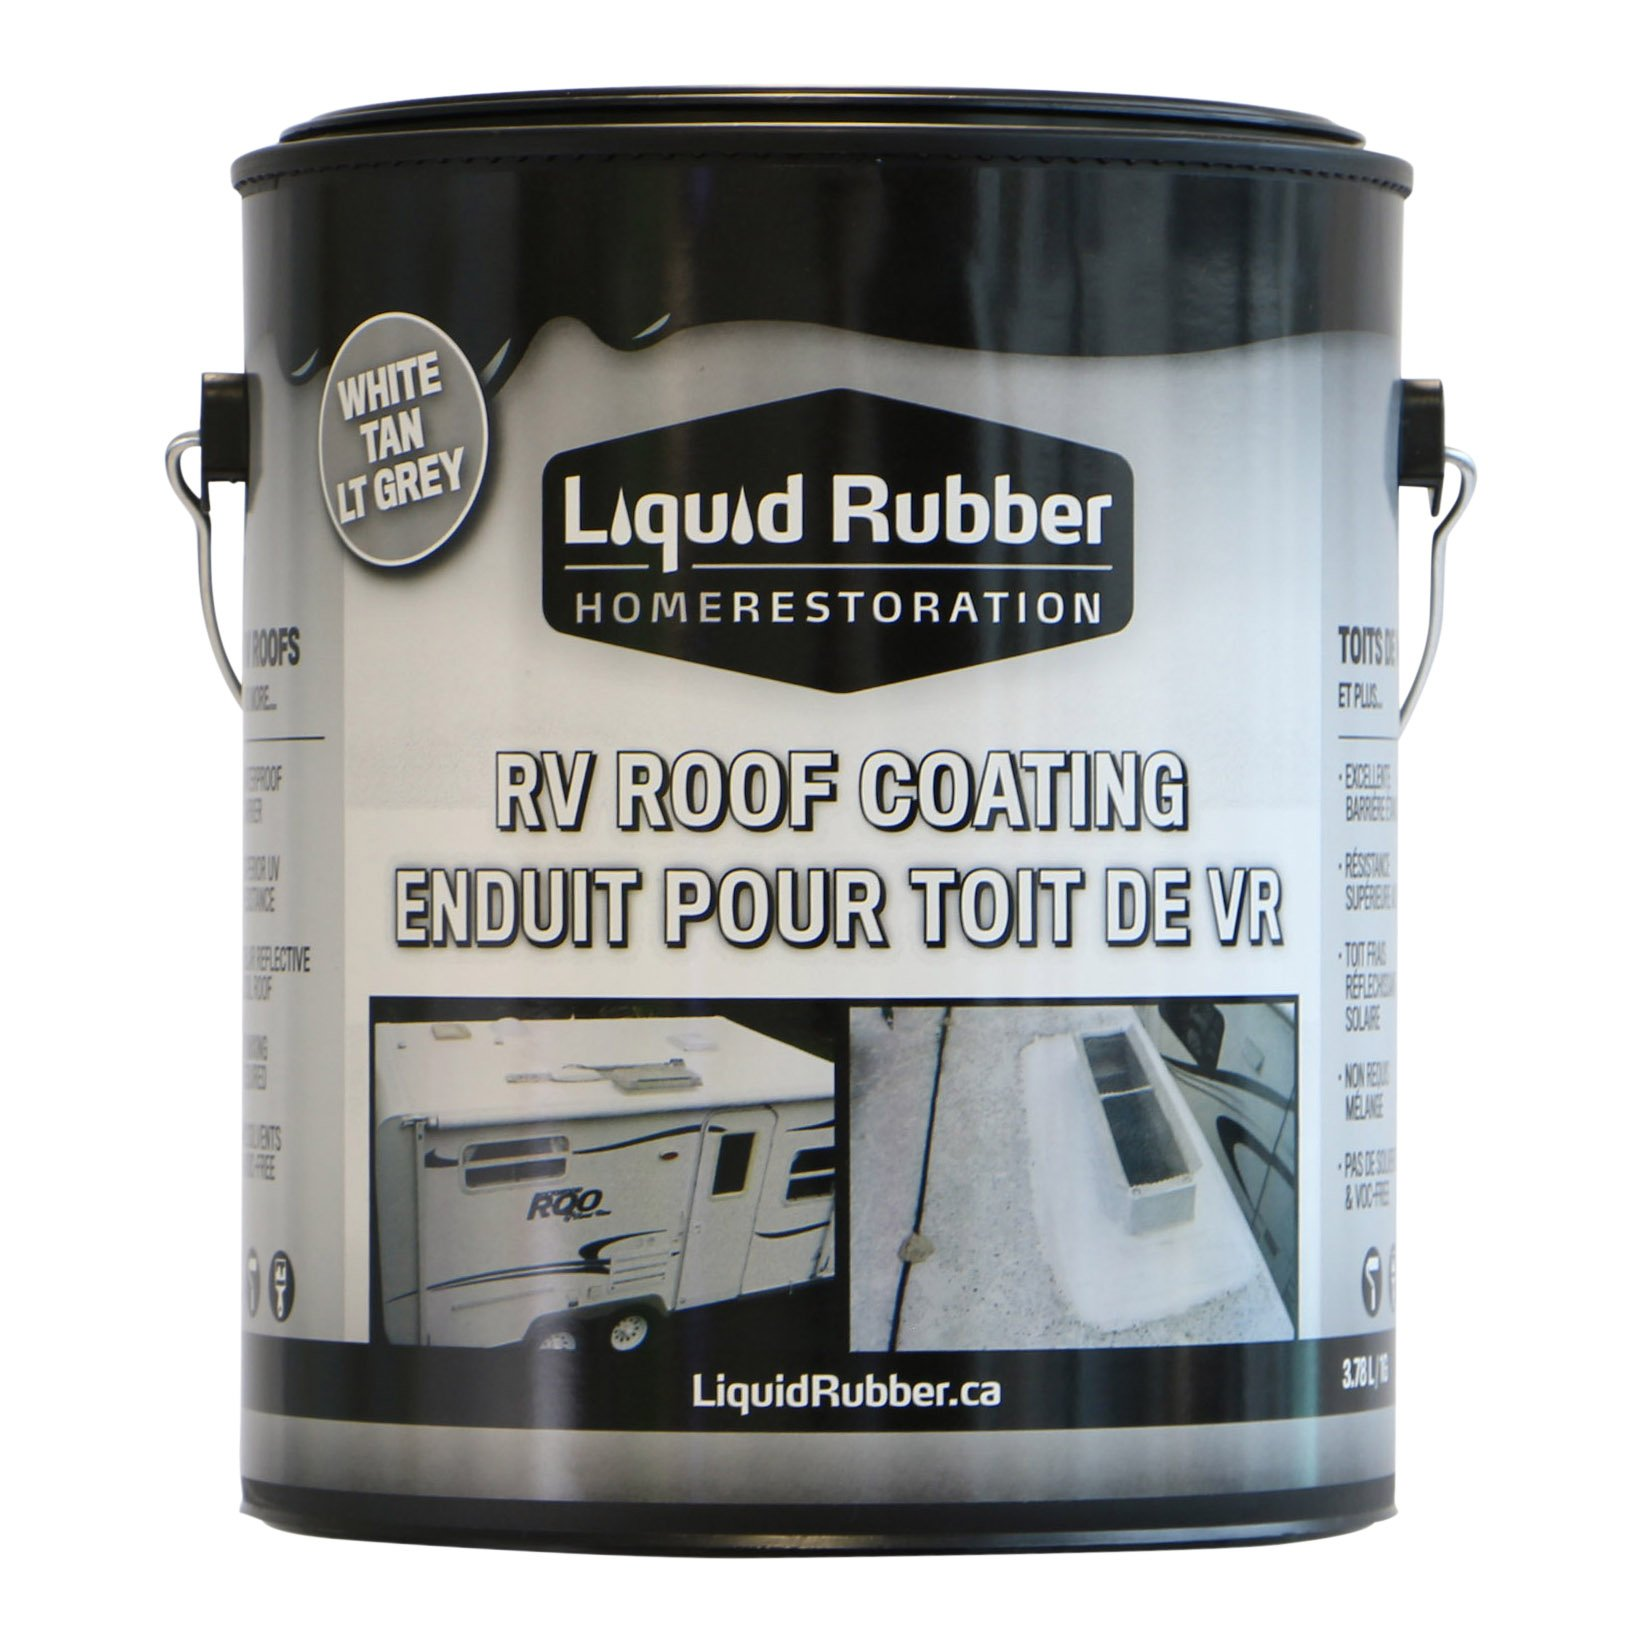 Liquid Rubber RV Roof Coating/Sealant - 1 Gallon - Brilliant White - Solar Reflective Cool Roof - Waterproof - Environmentally Friendly - No Solvents or VOC's - Easy to Apply - No Mixing - TOP SELLER